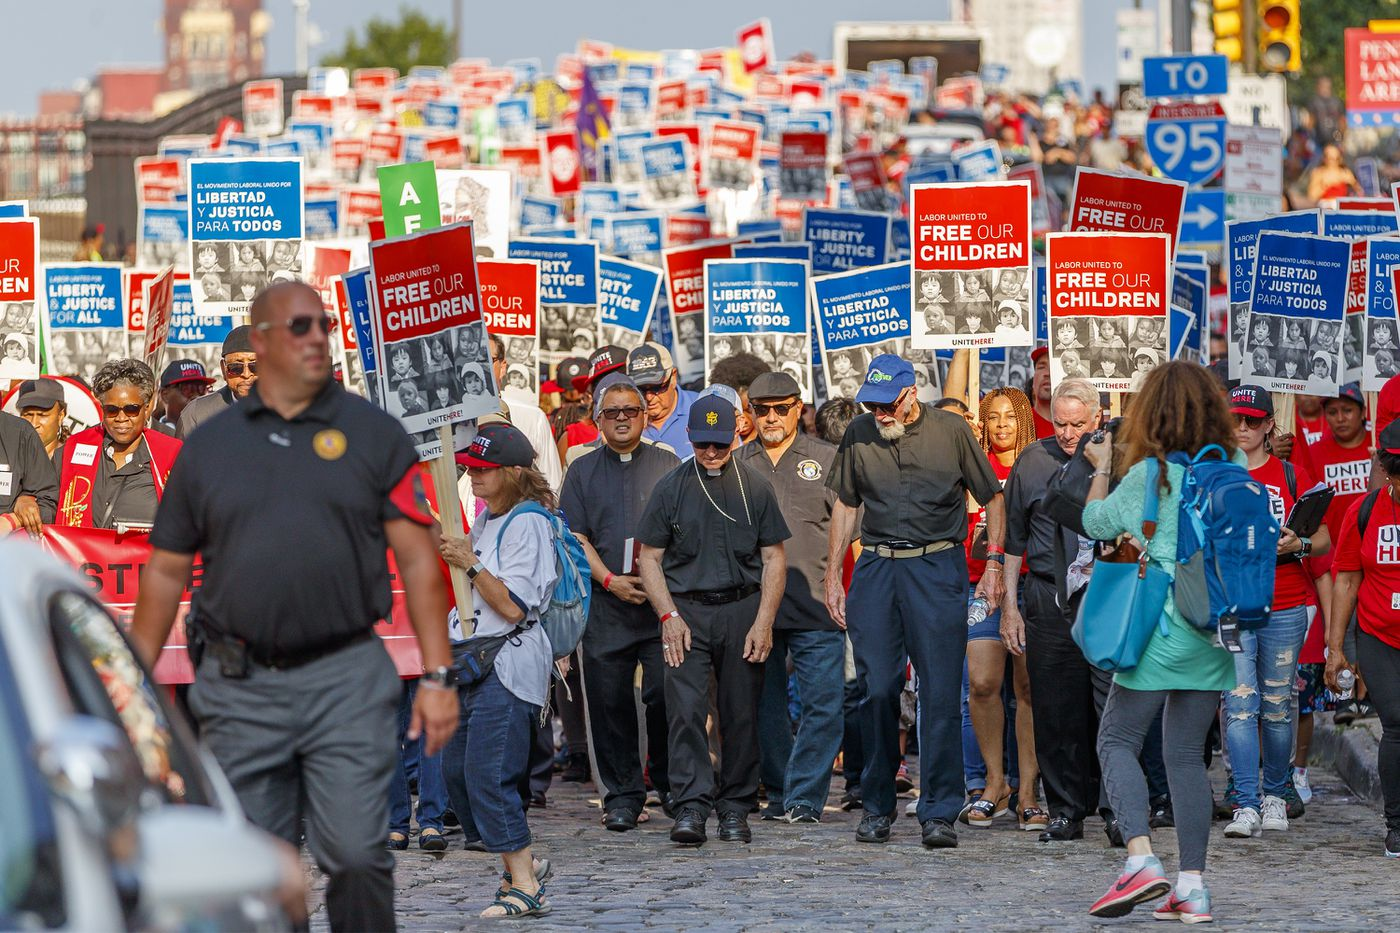 A smaller but vocal crowd speaks up at Philly labor rally to support immigrant children